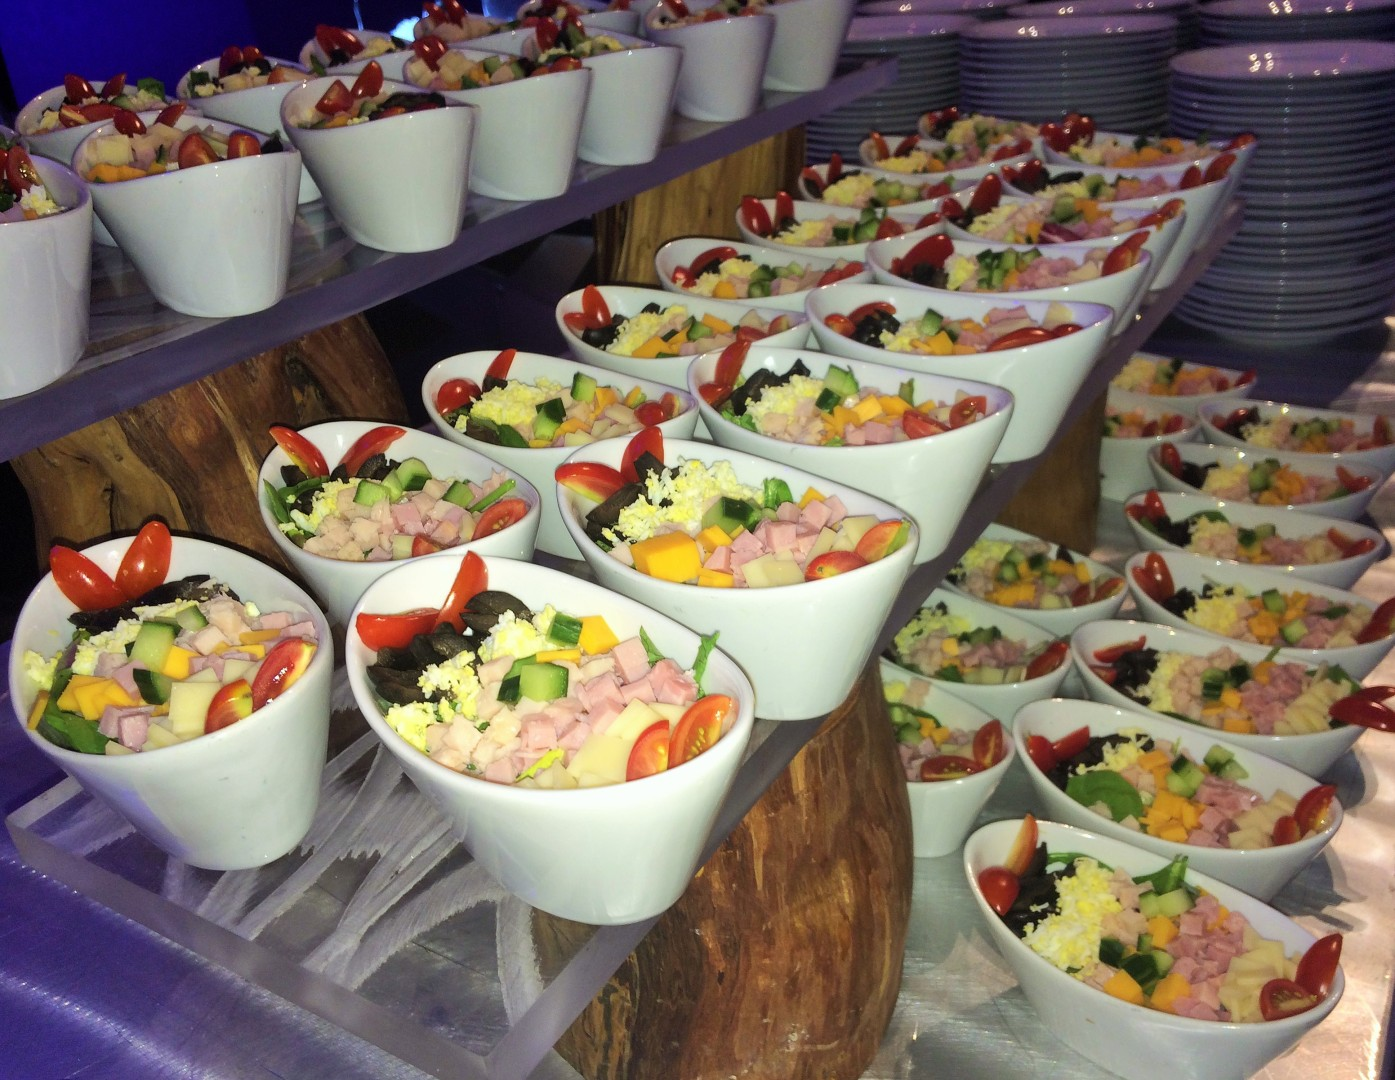 Chef salad bowls